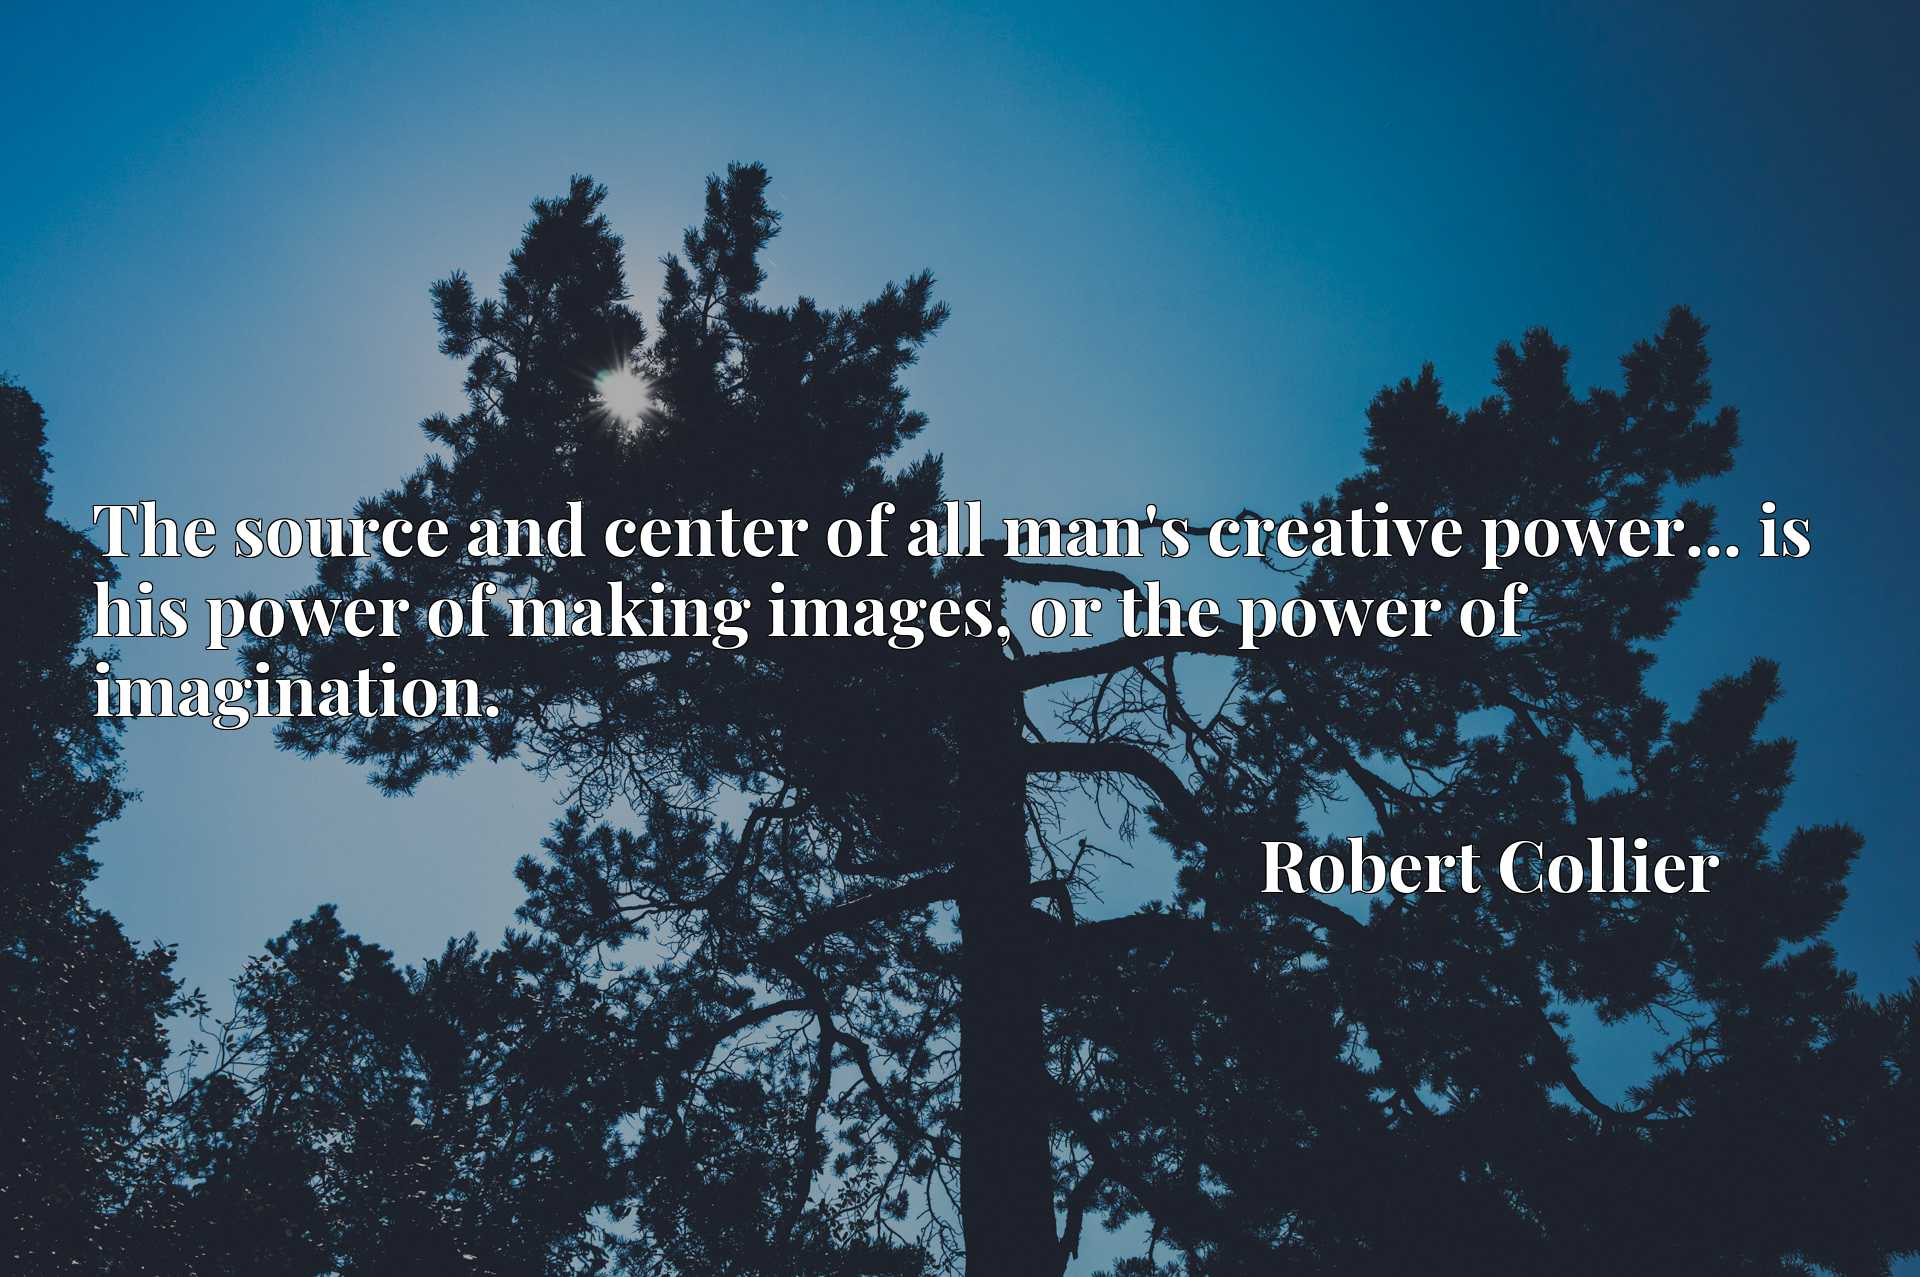 Quote Picture :The source and center of all man's creative power... is his power of making images, or the power of imagination.